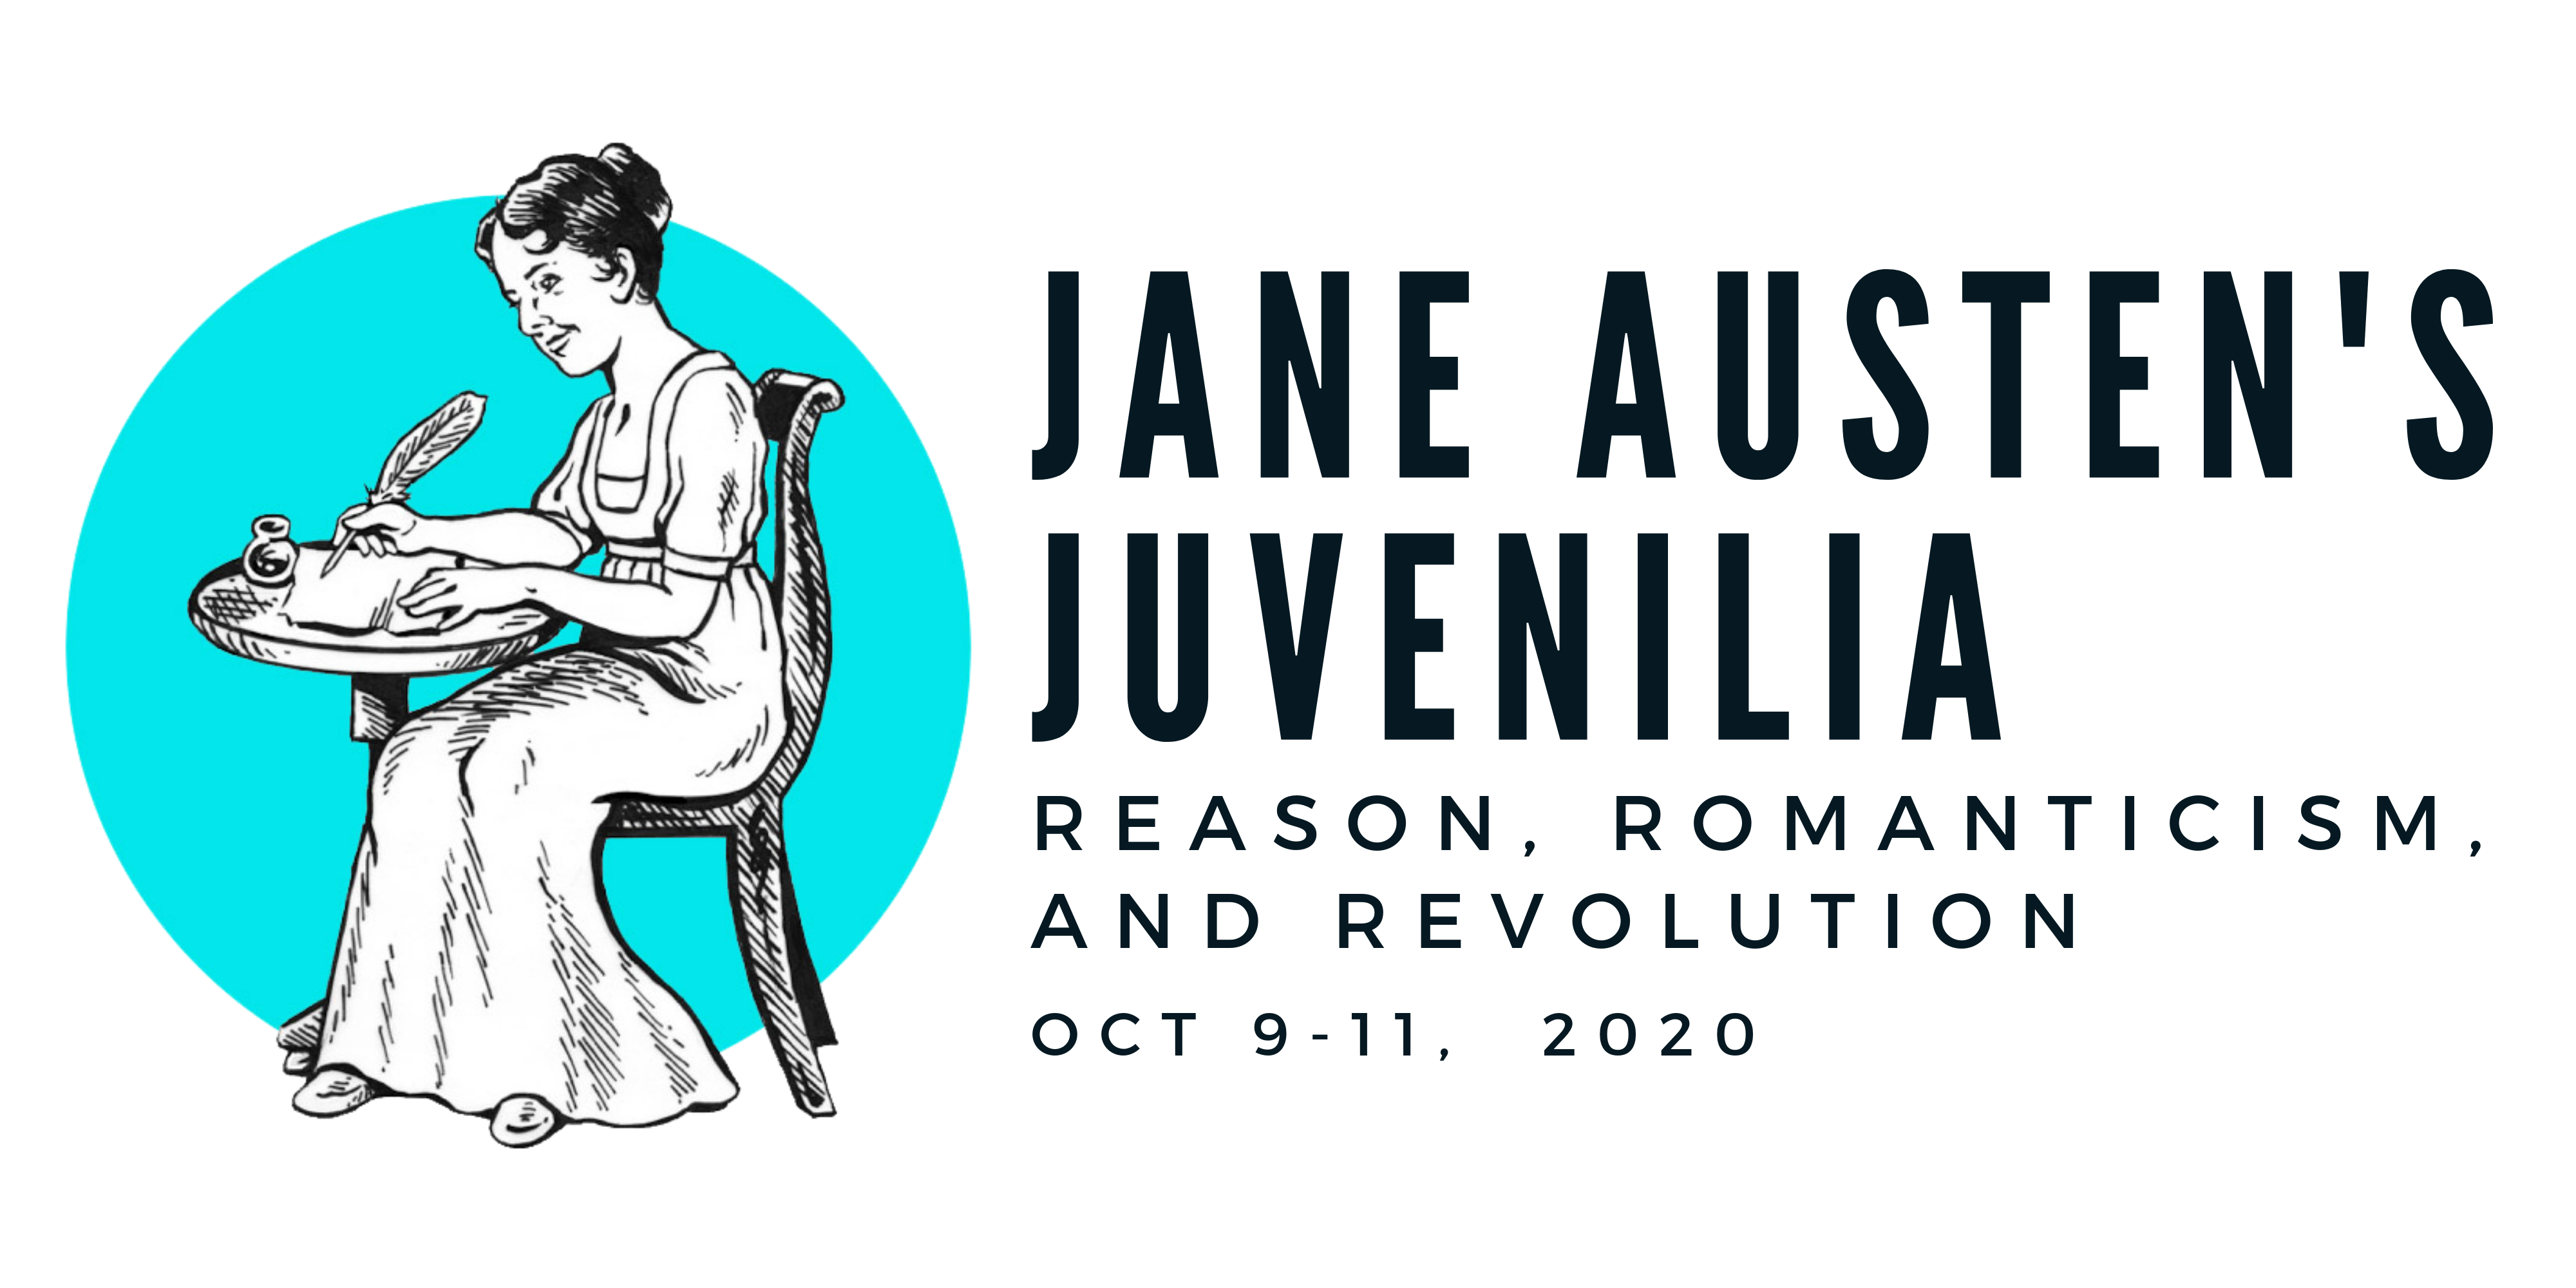 JASNA 2020 AGM - Jane Austen's Juvenilia:  Reason, Romanticism, and Revolution @ Cleveland, Ohio